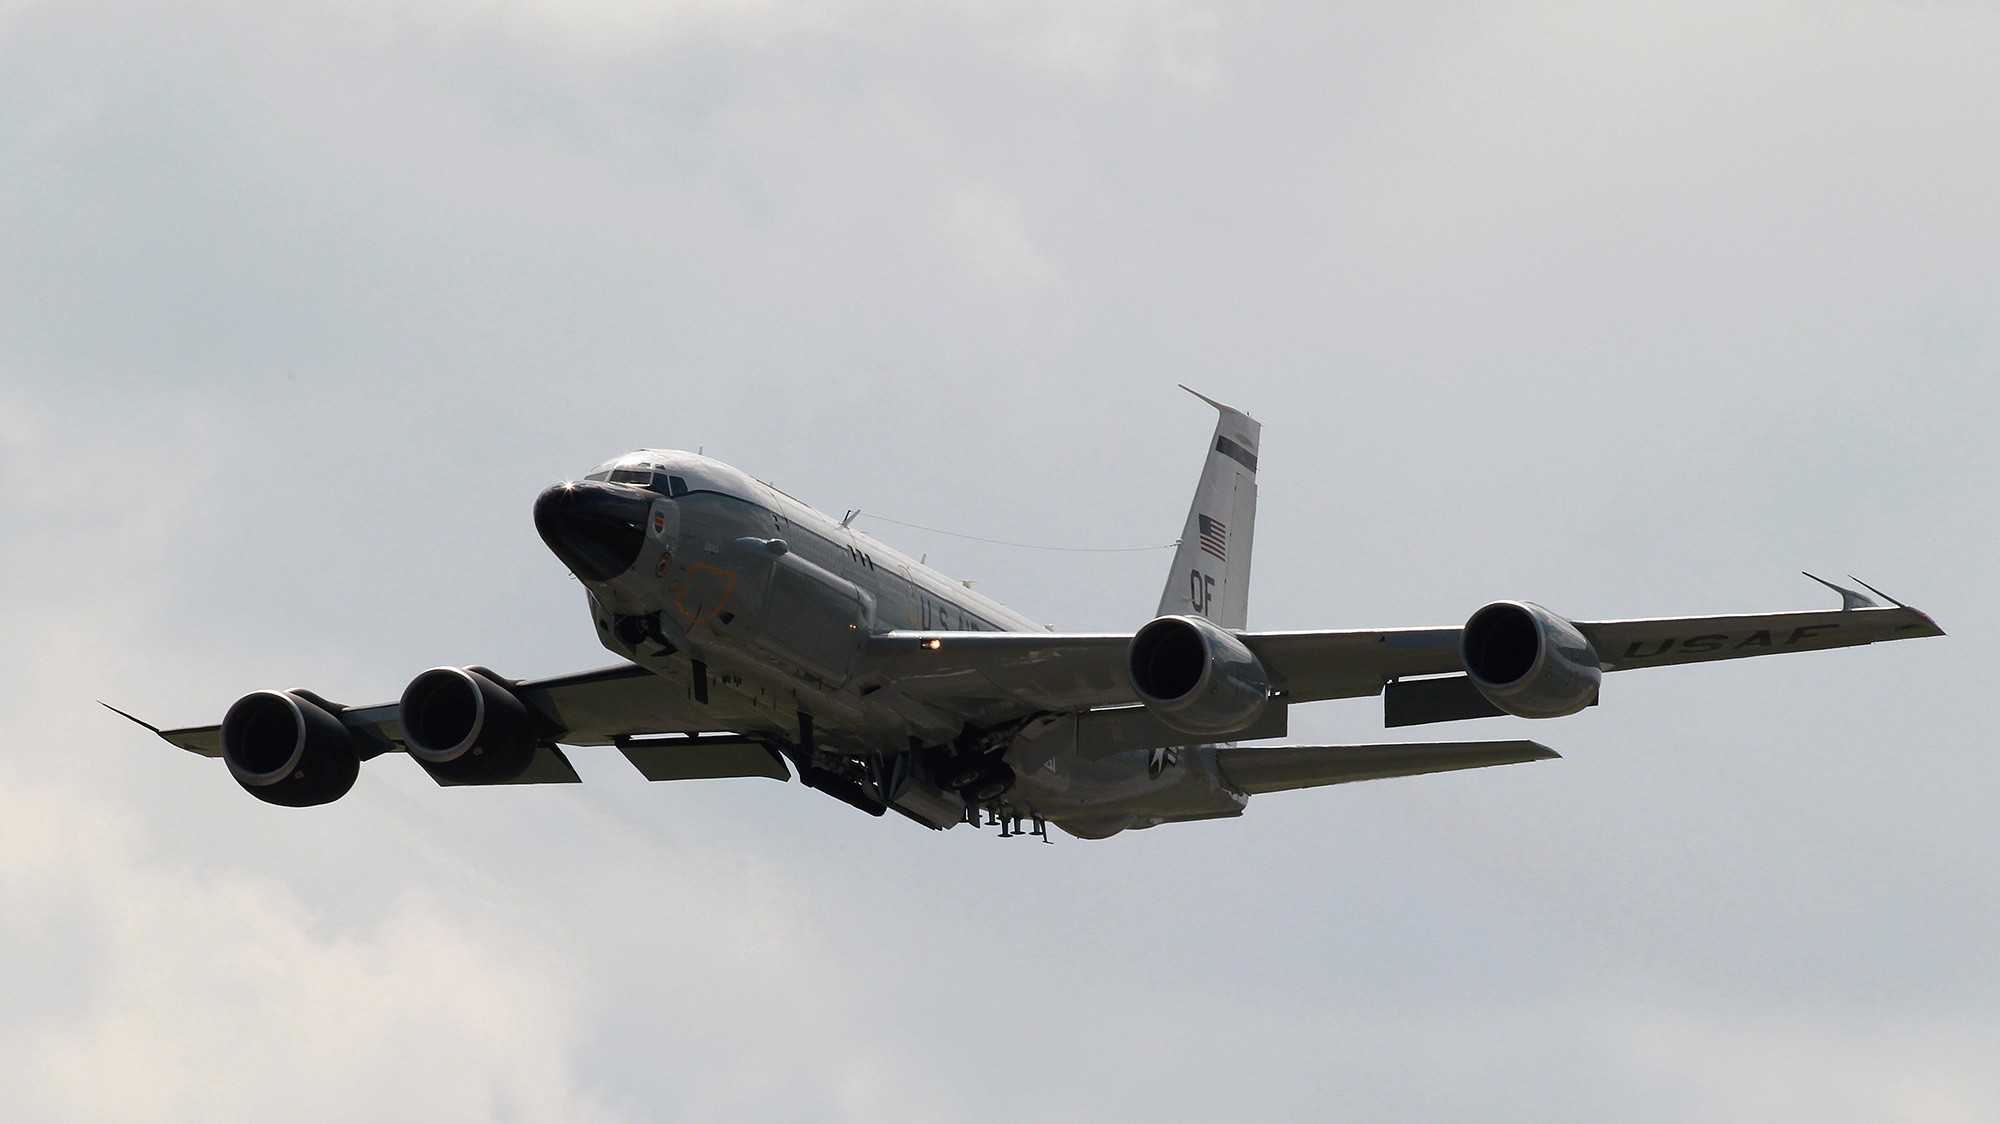 Chinese Fighter Jet Made 'Unsafe' Intercept of American Spy Plane, US Military Says